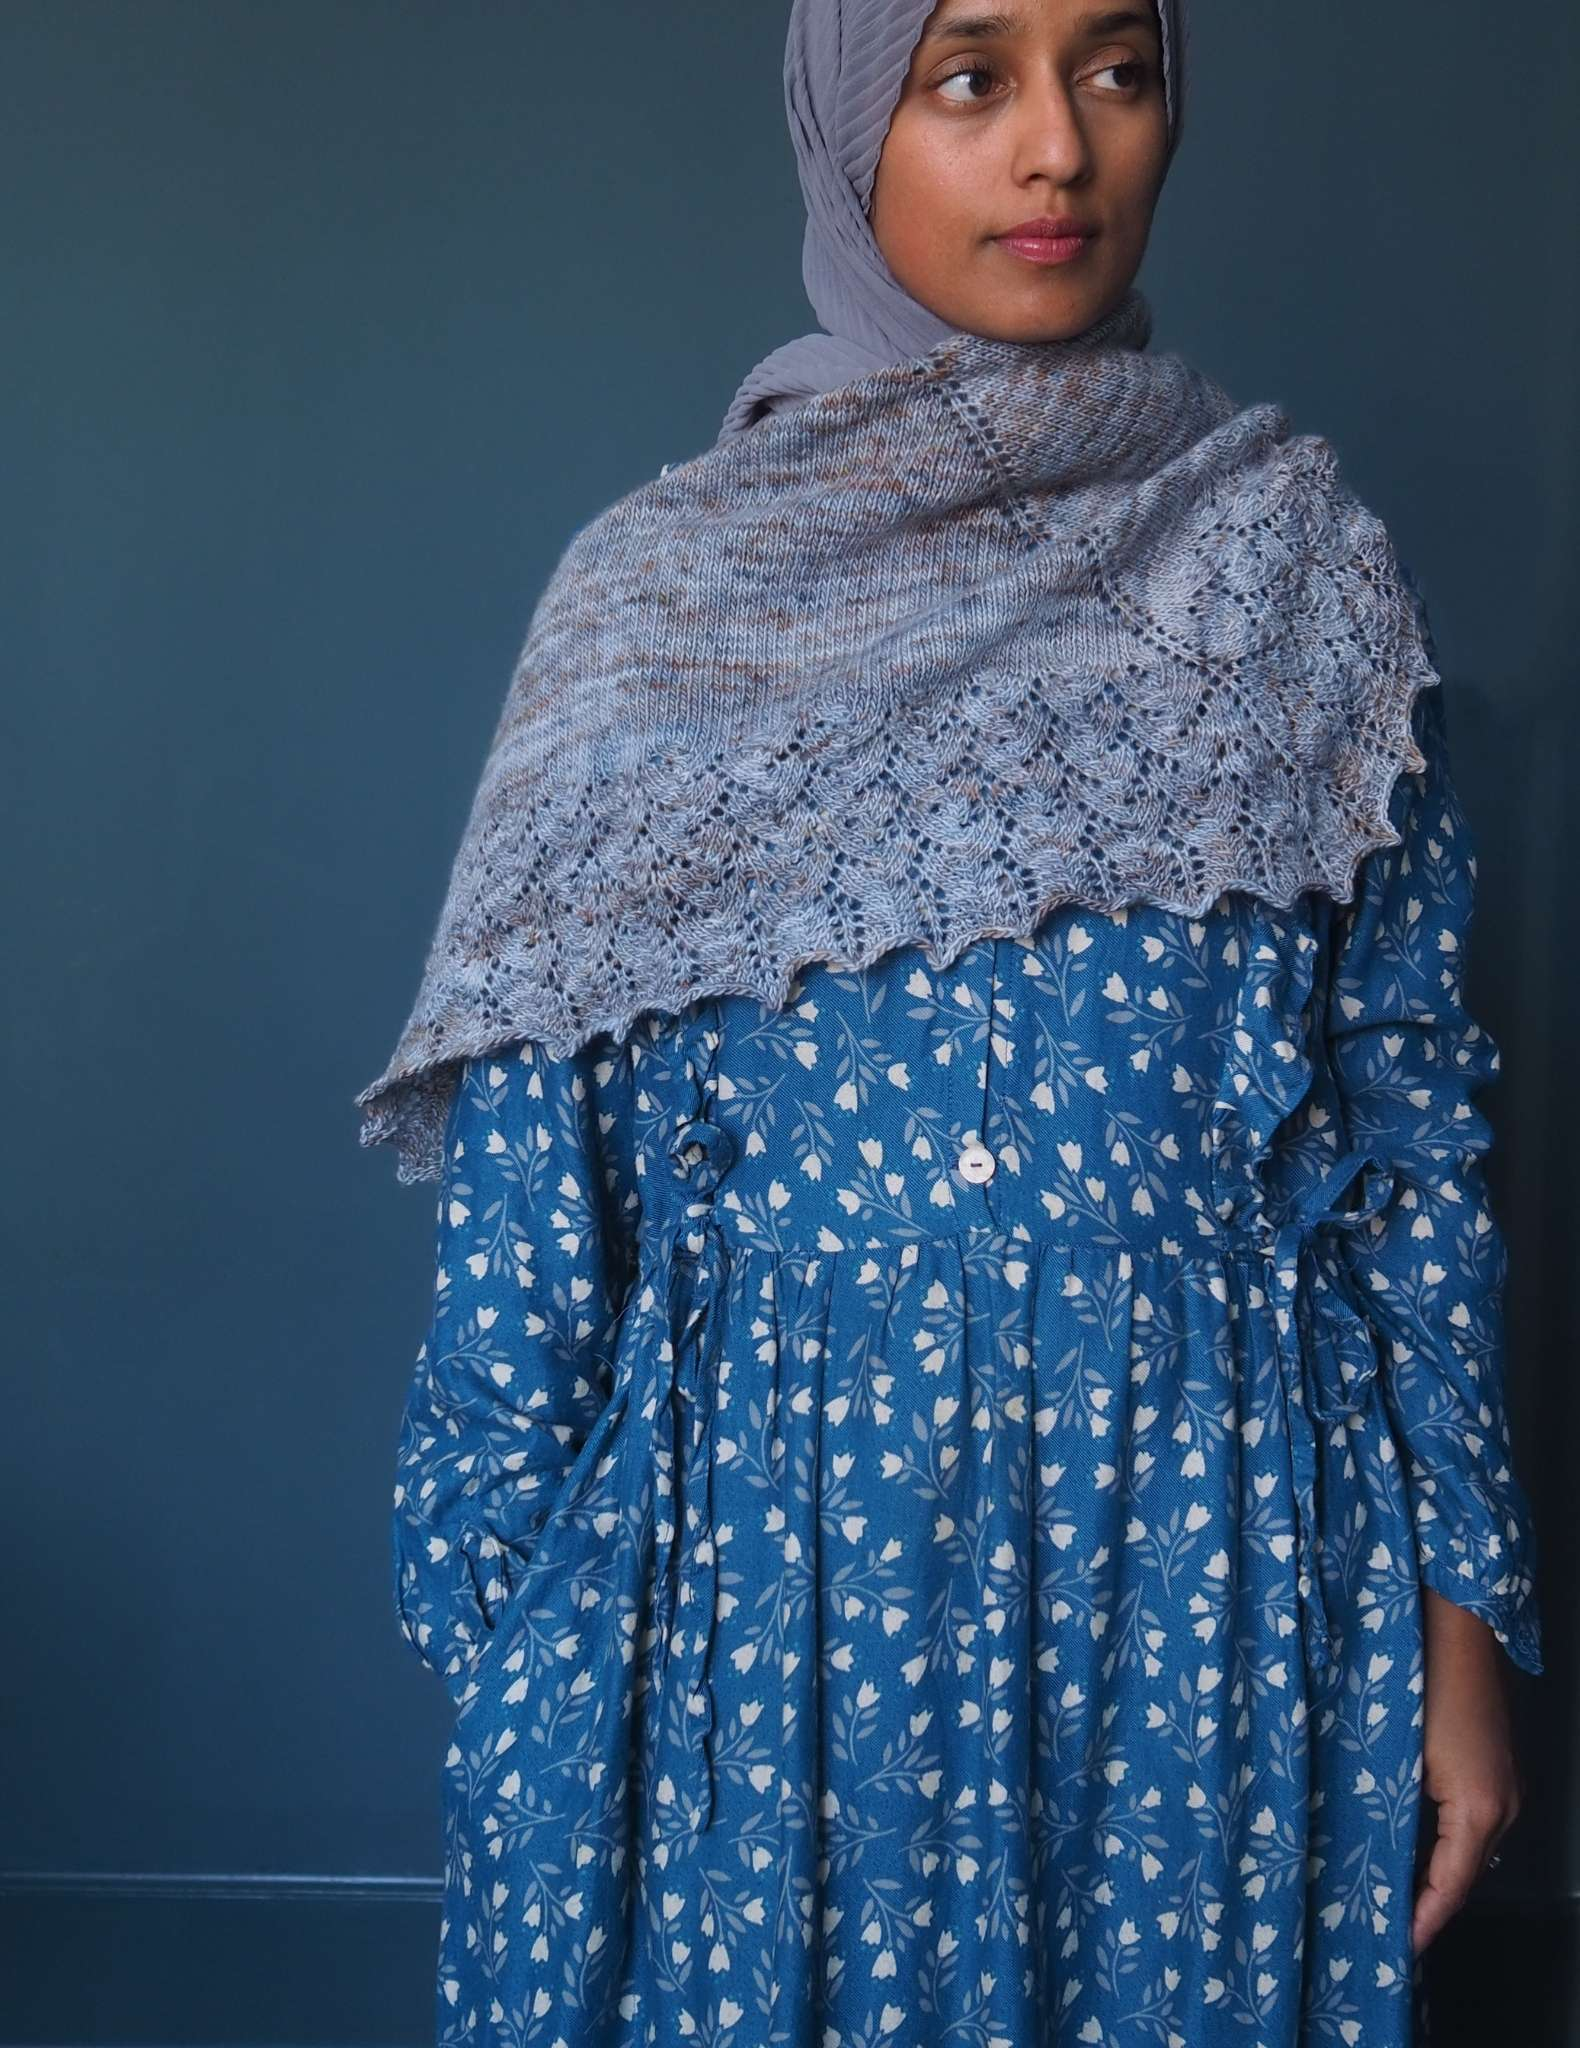 A brown woman in a hijab stands in front of a dark blue background and looks to the side. She is wearing a blue dress with small white floral print, and has a grey blue shawl wrapped around her shoulders and chest.